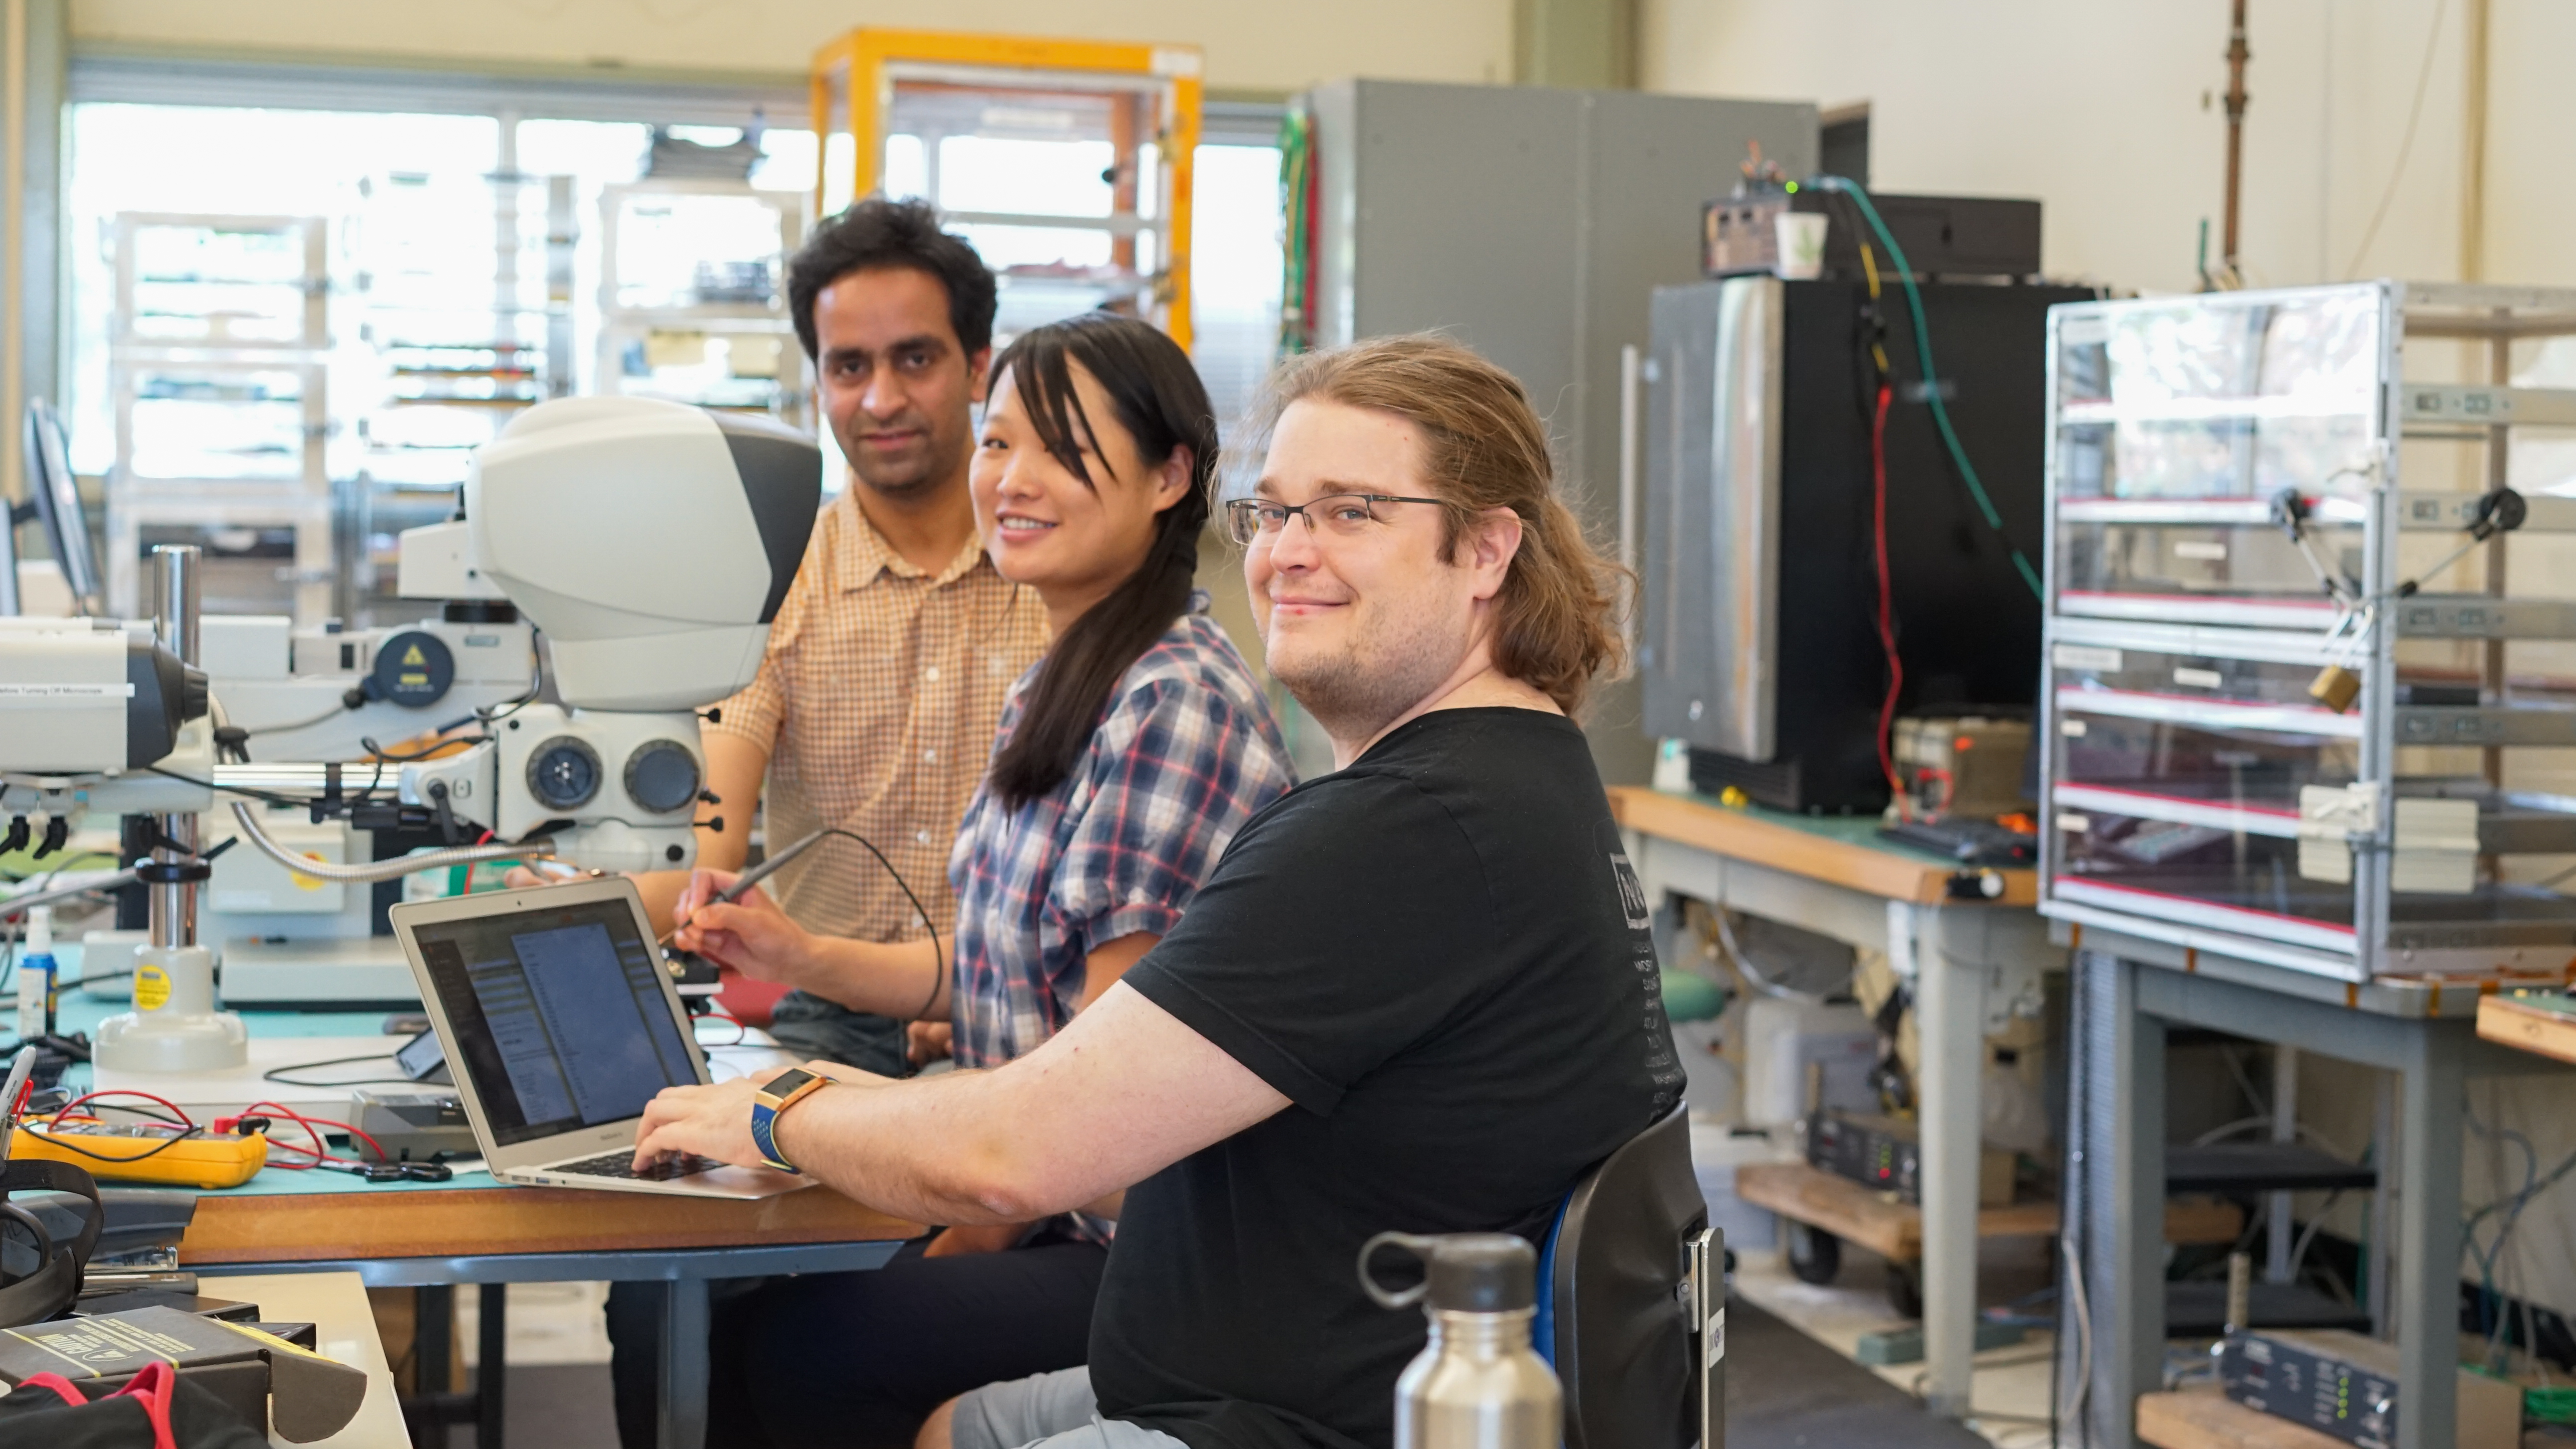 (1/2) Lindsey Grey, right, is an associate scientist in the Scientific Computing Division working on early prototypes of readout boards for the MIP timing detector endcap timing layer. This group is determining by hand the functioning yield of bump bonds that attach a low-gain avalanche detector (a silicon sensor that can be used as a precision timing device) to a simple interposer PCB to make a prototype sensor assembly. From left: Aashaq Shah (Delhi University), Miaoyuan Liu (Fermilab), Lindsey Gray (Fermilab). detector technology, people Photo: Leticia Shaddix